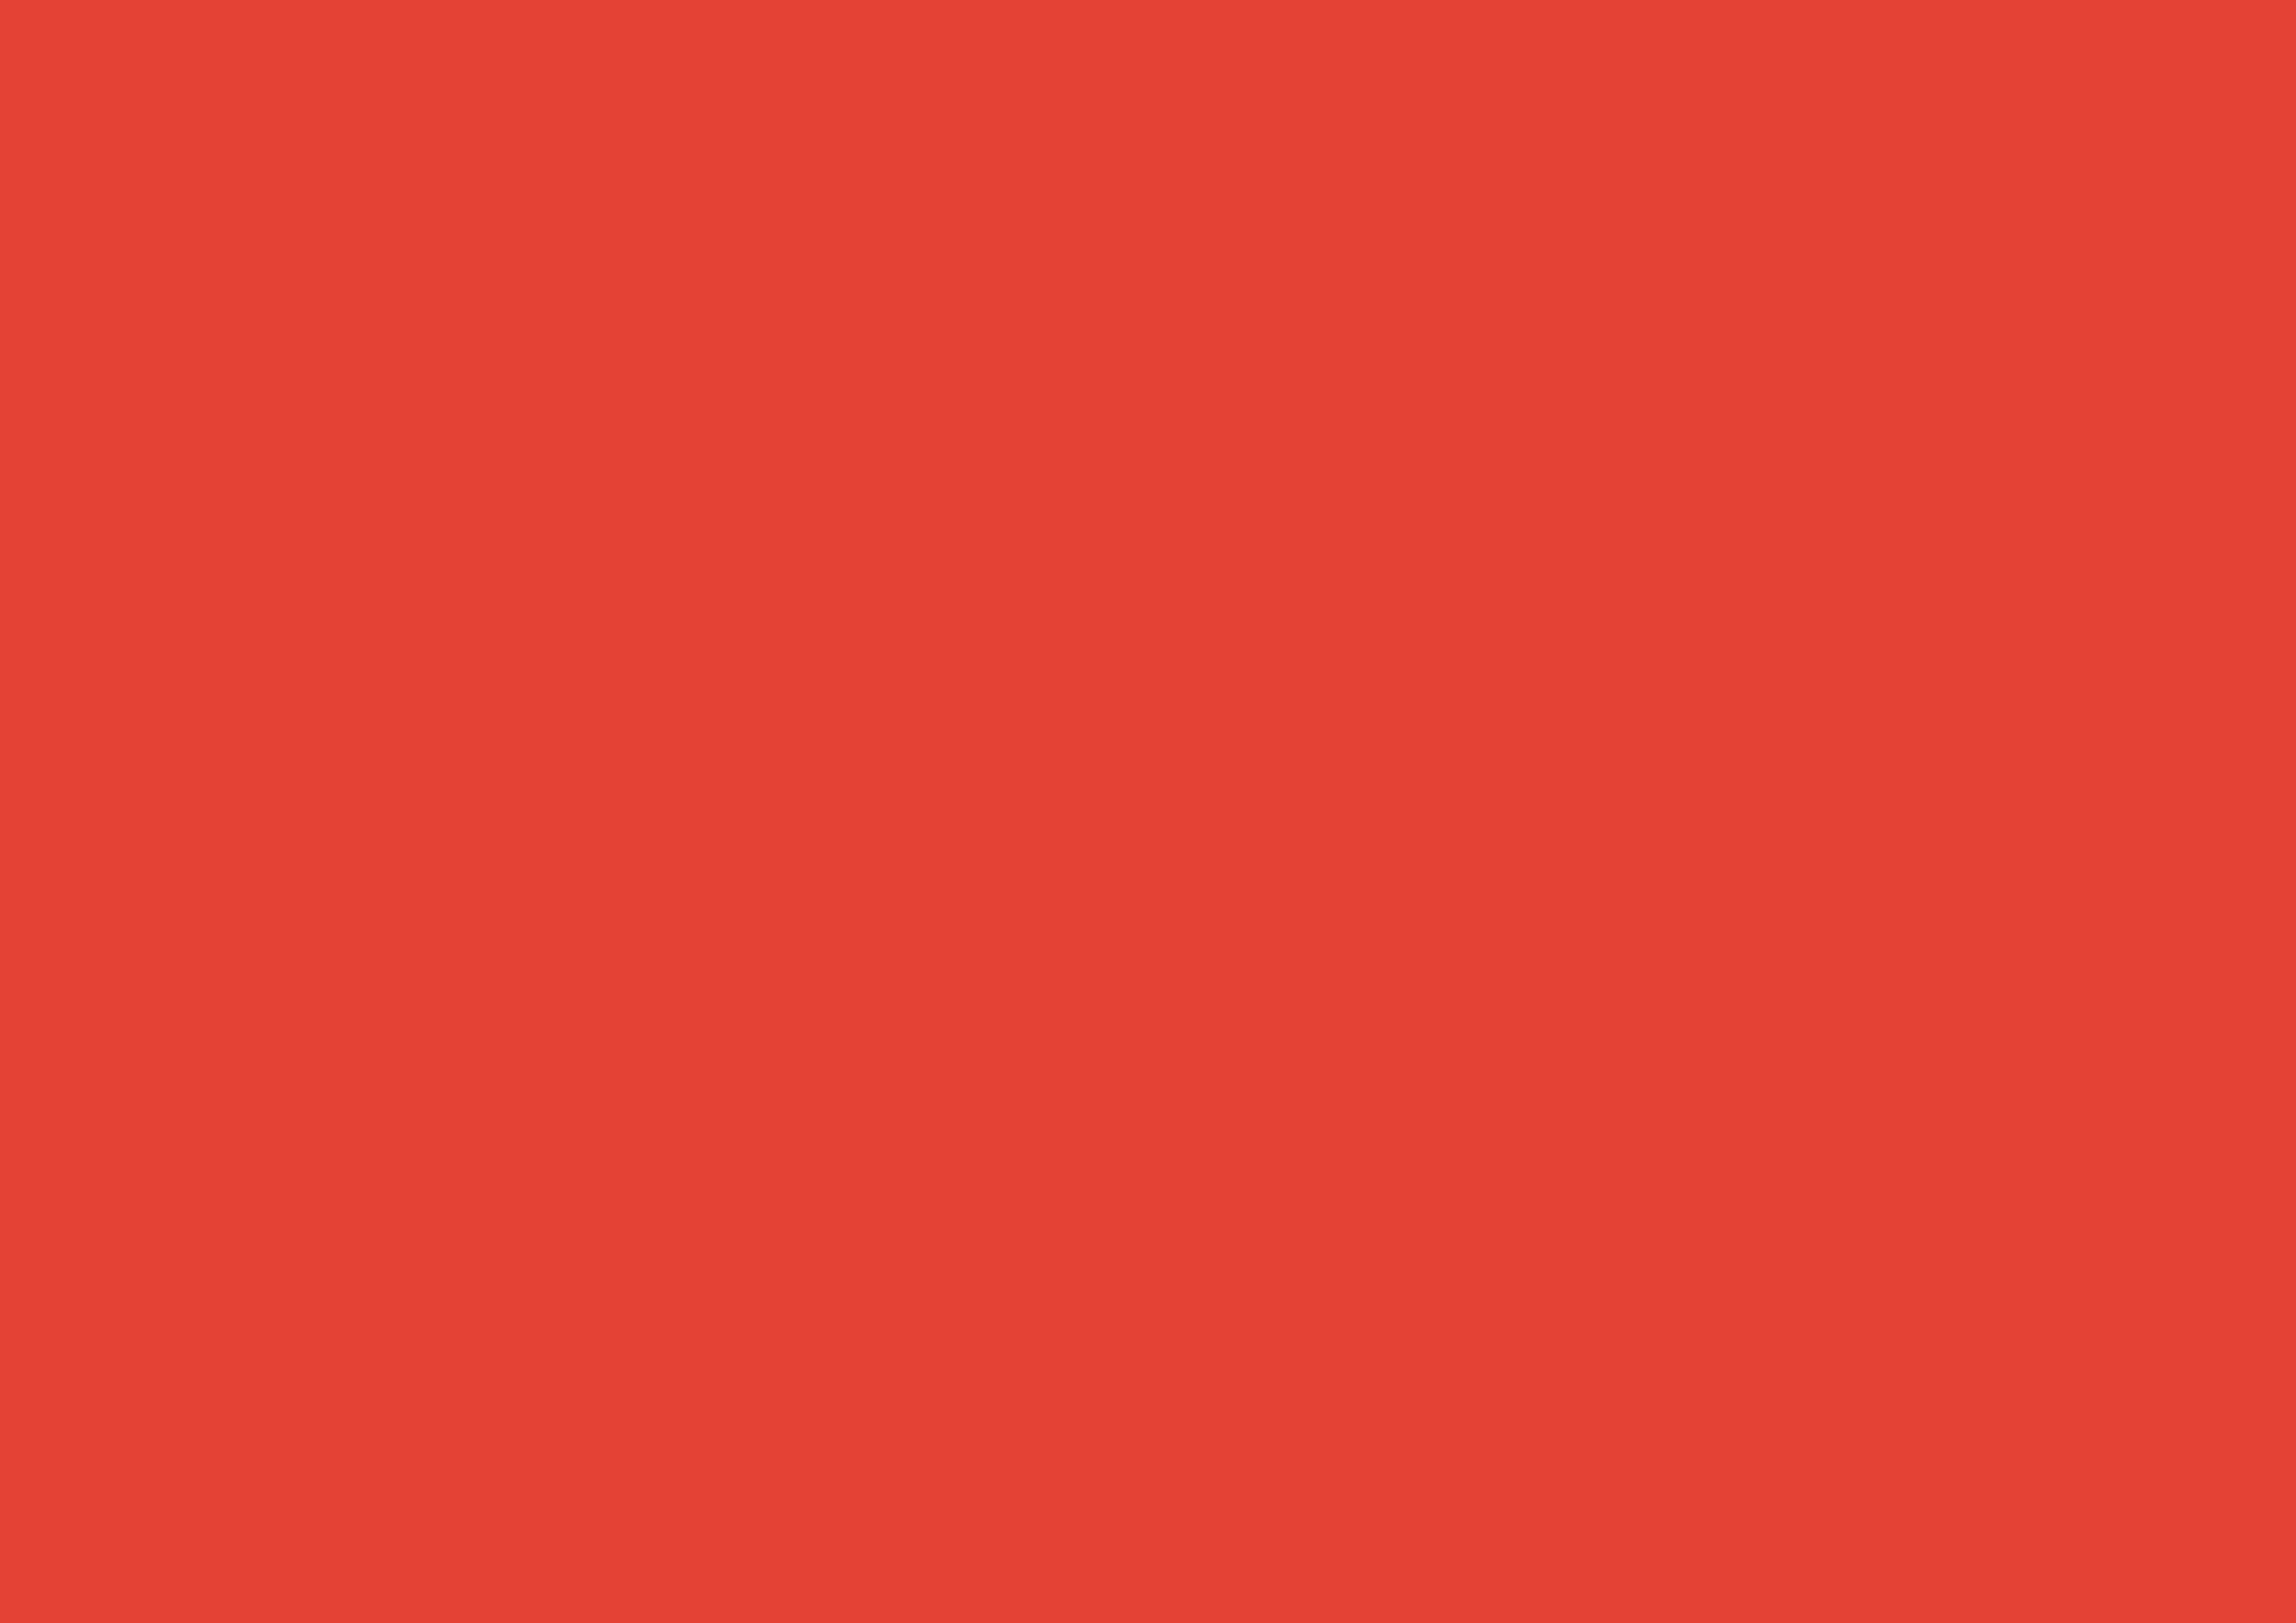 3508x2480 Cinnabar Solid Color Background